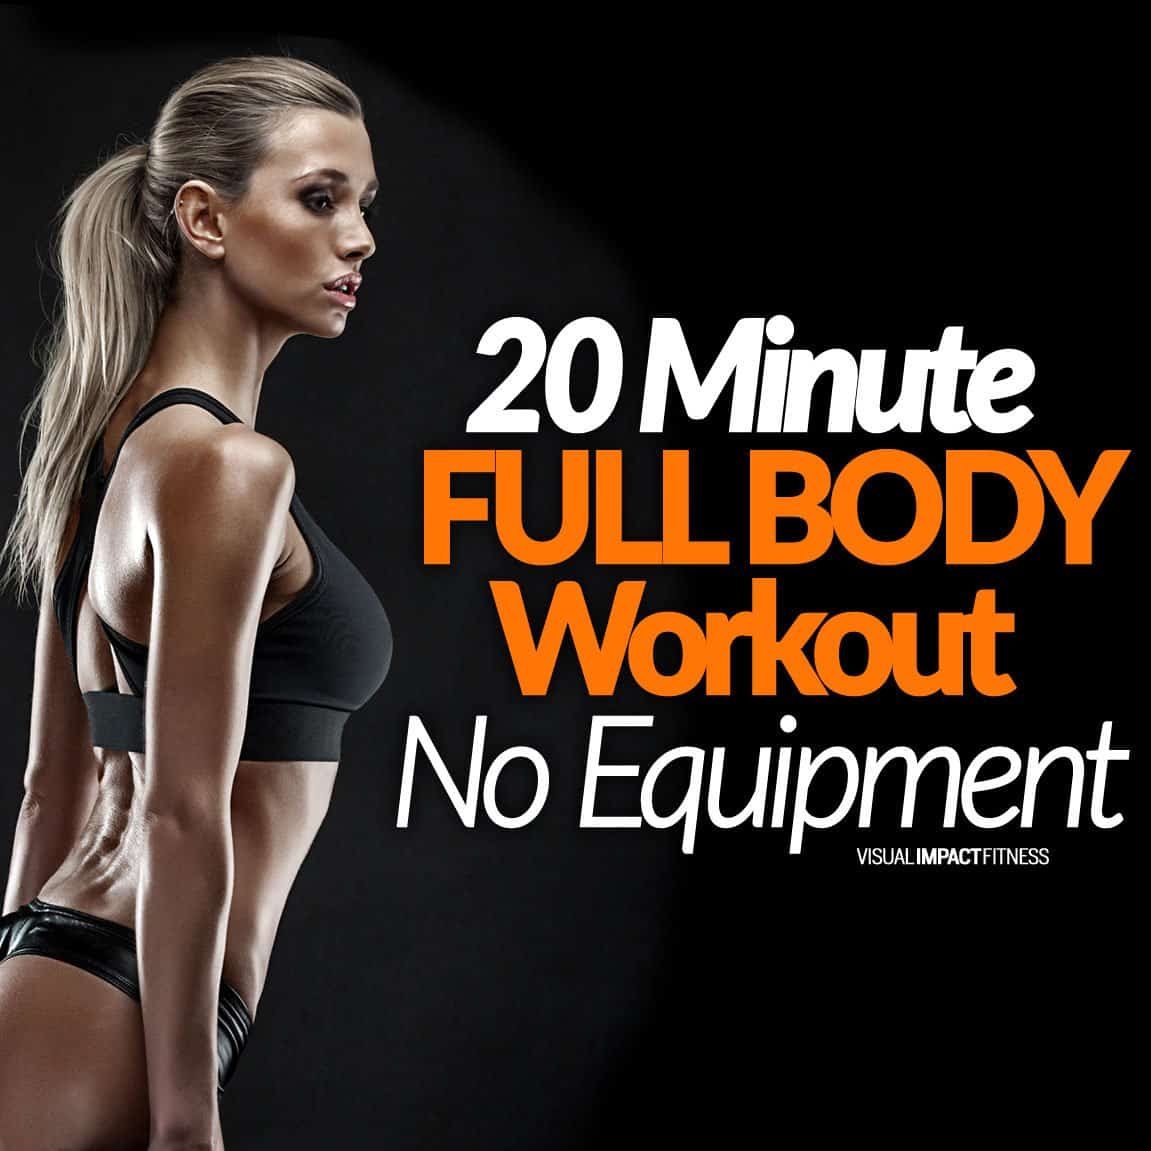 20 Minute FULL BODY Workout (No Equipment)